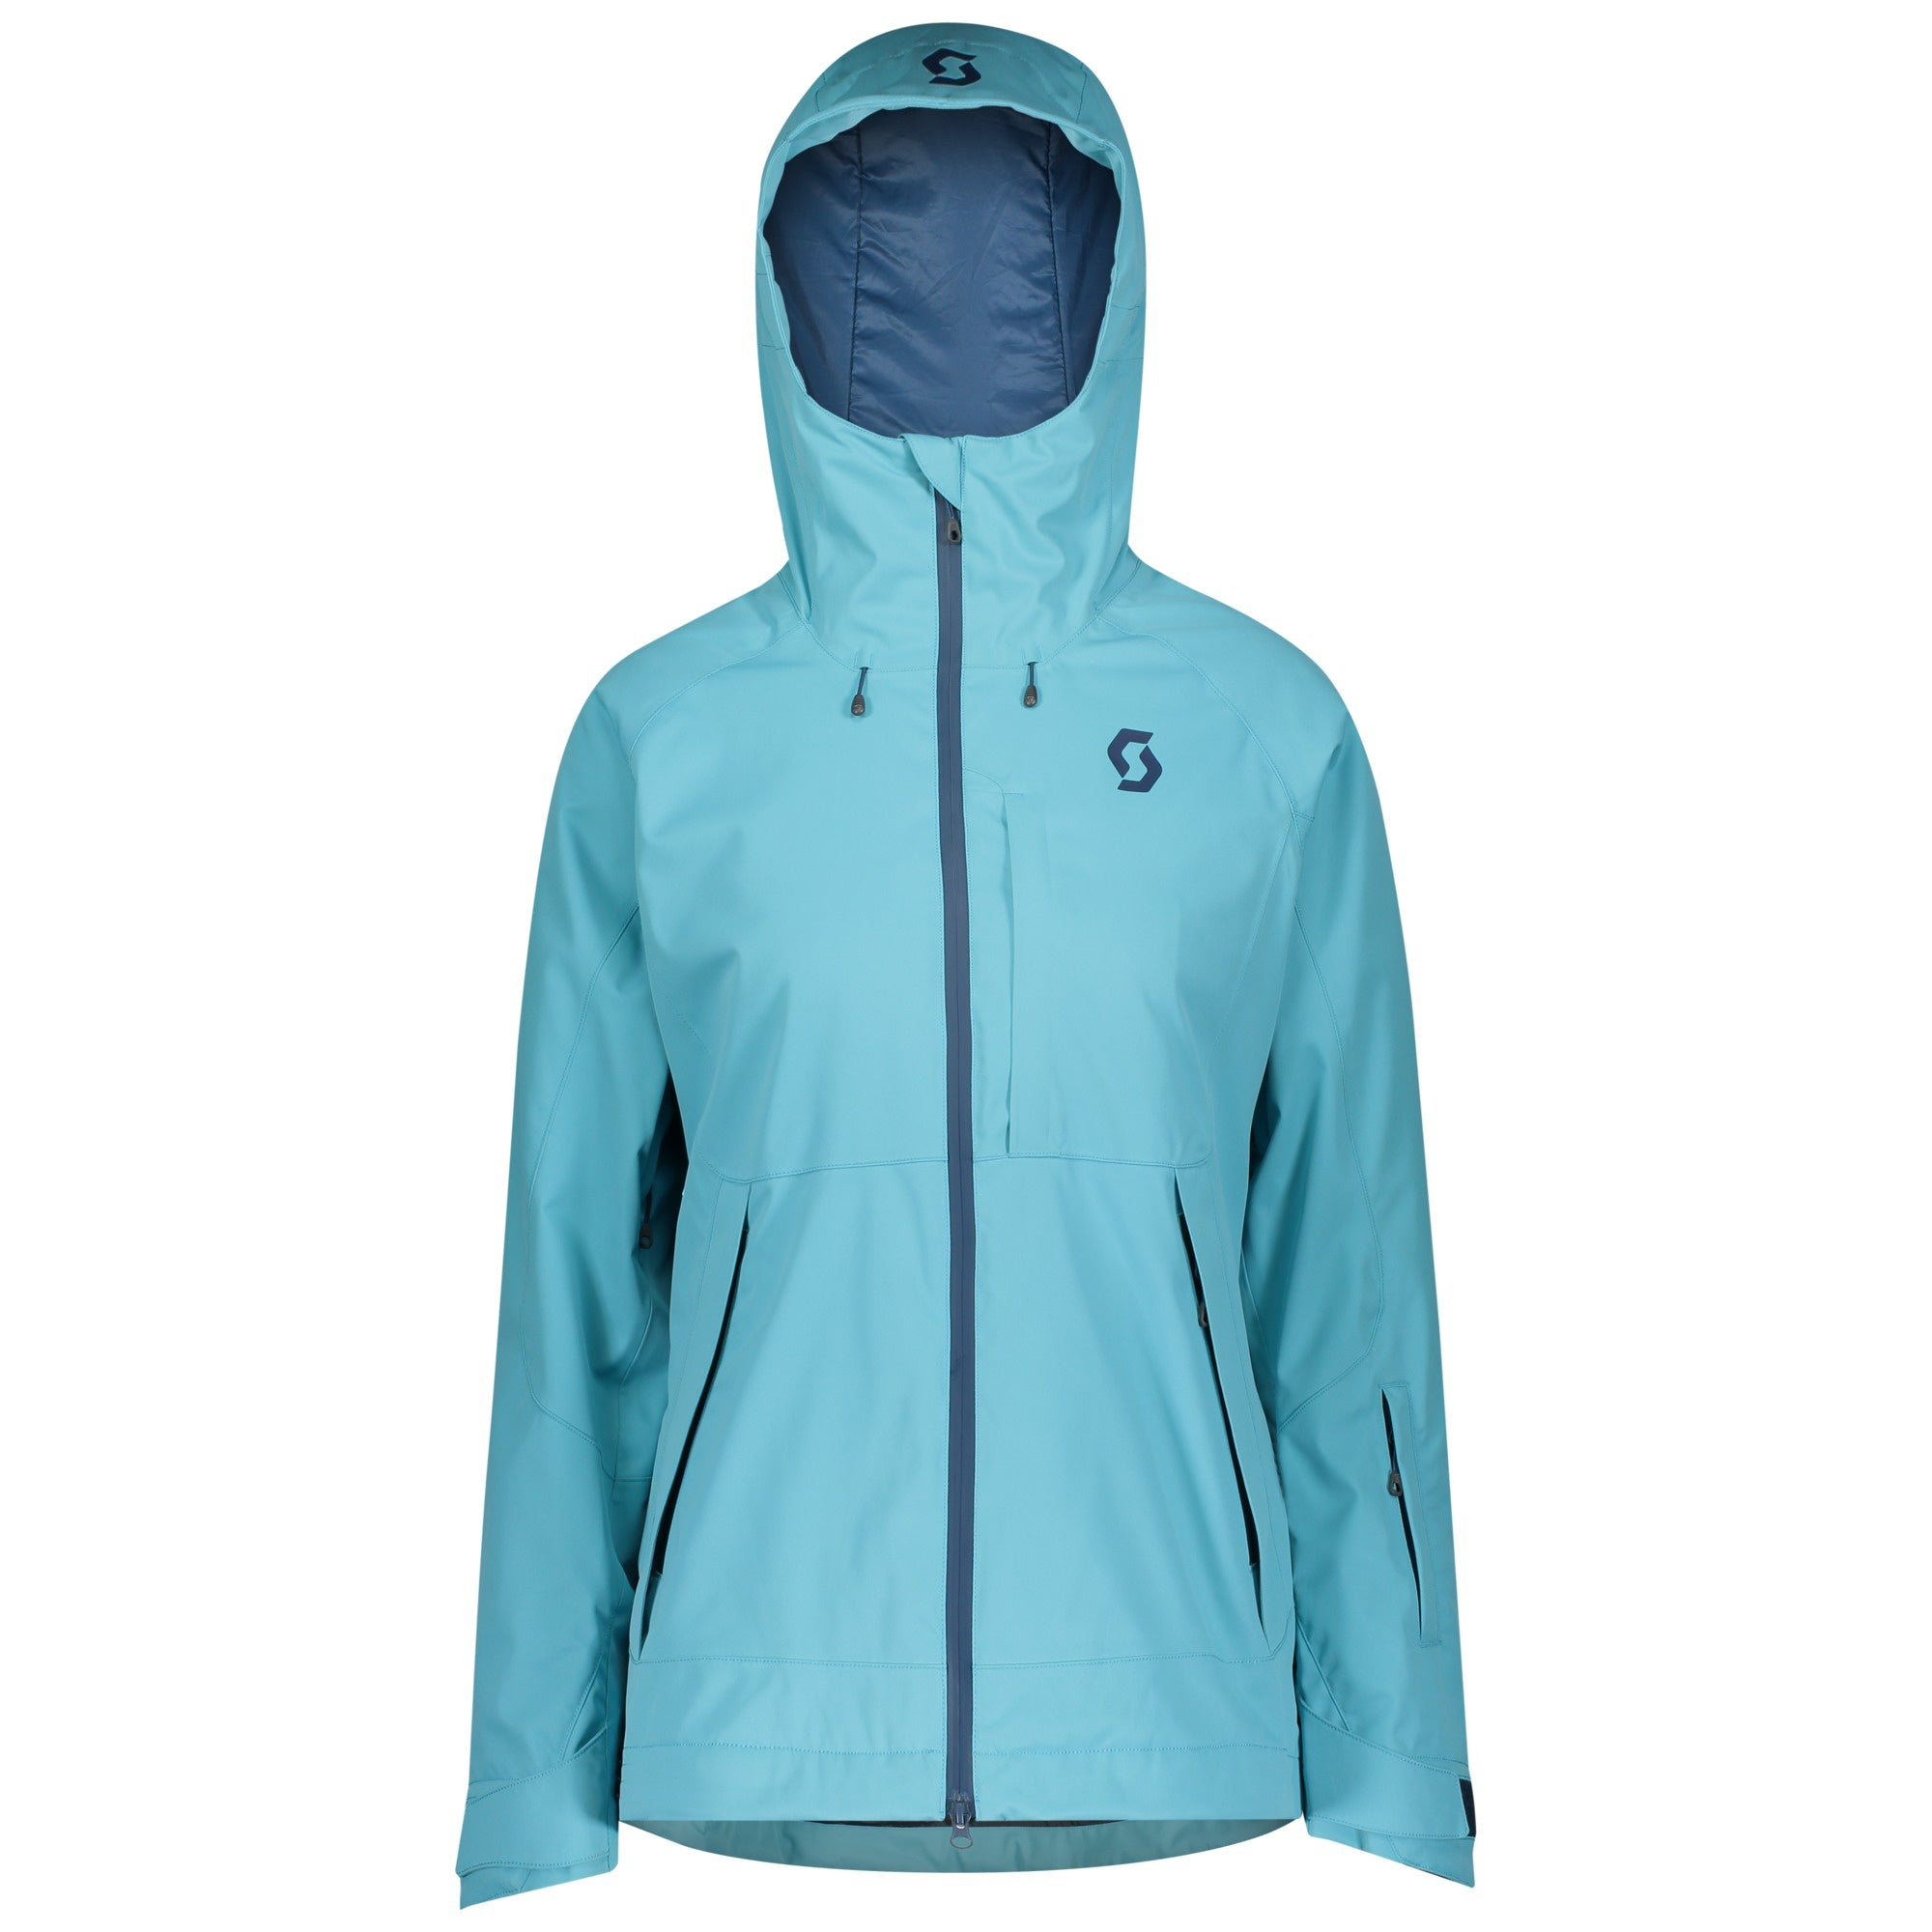 Scott 2021 Women's Ultimate Dryo Jacket